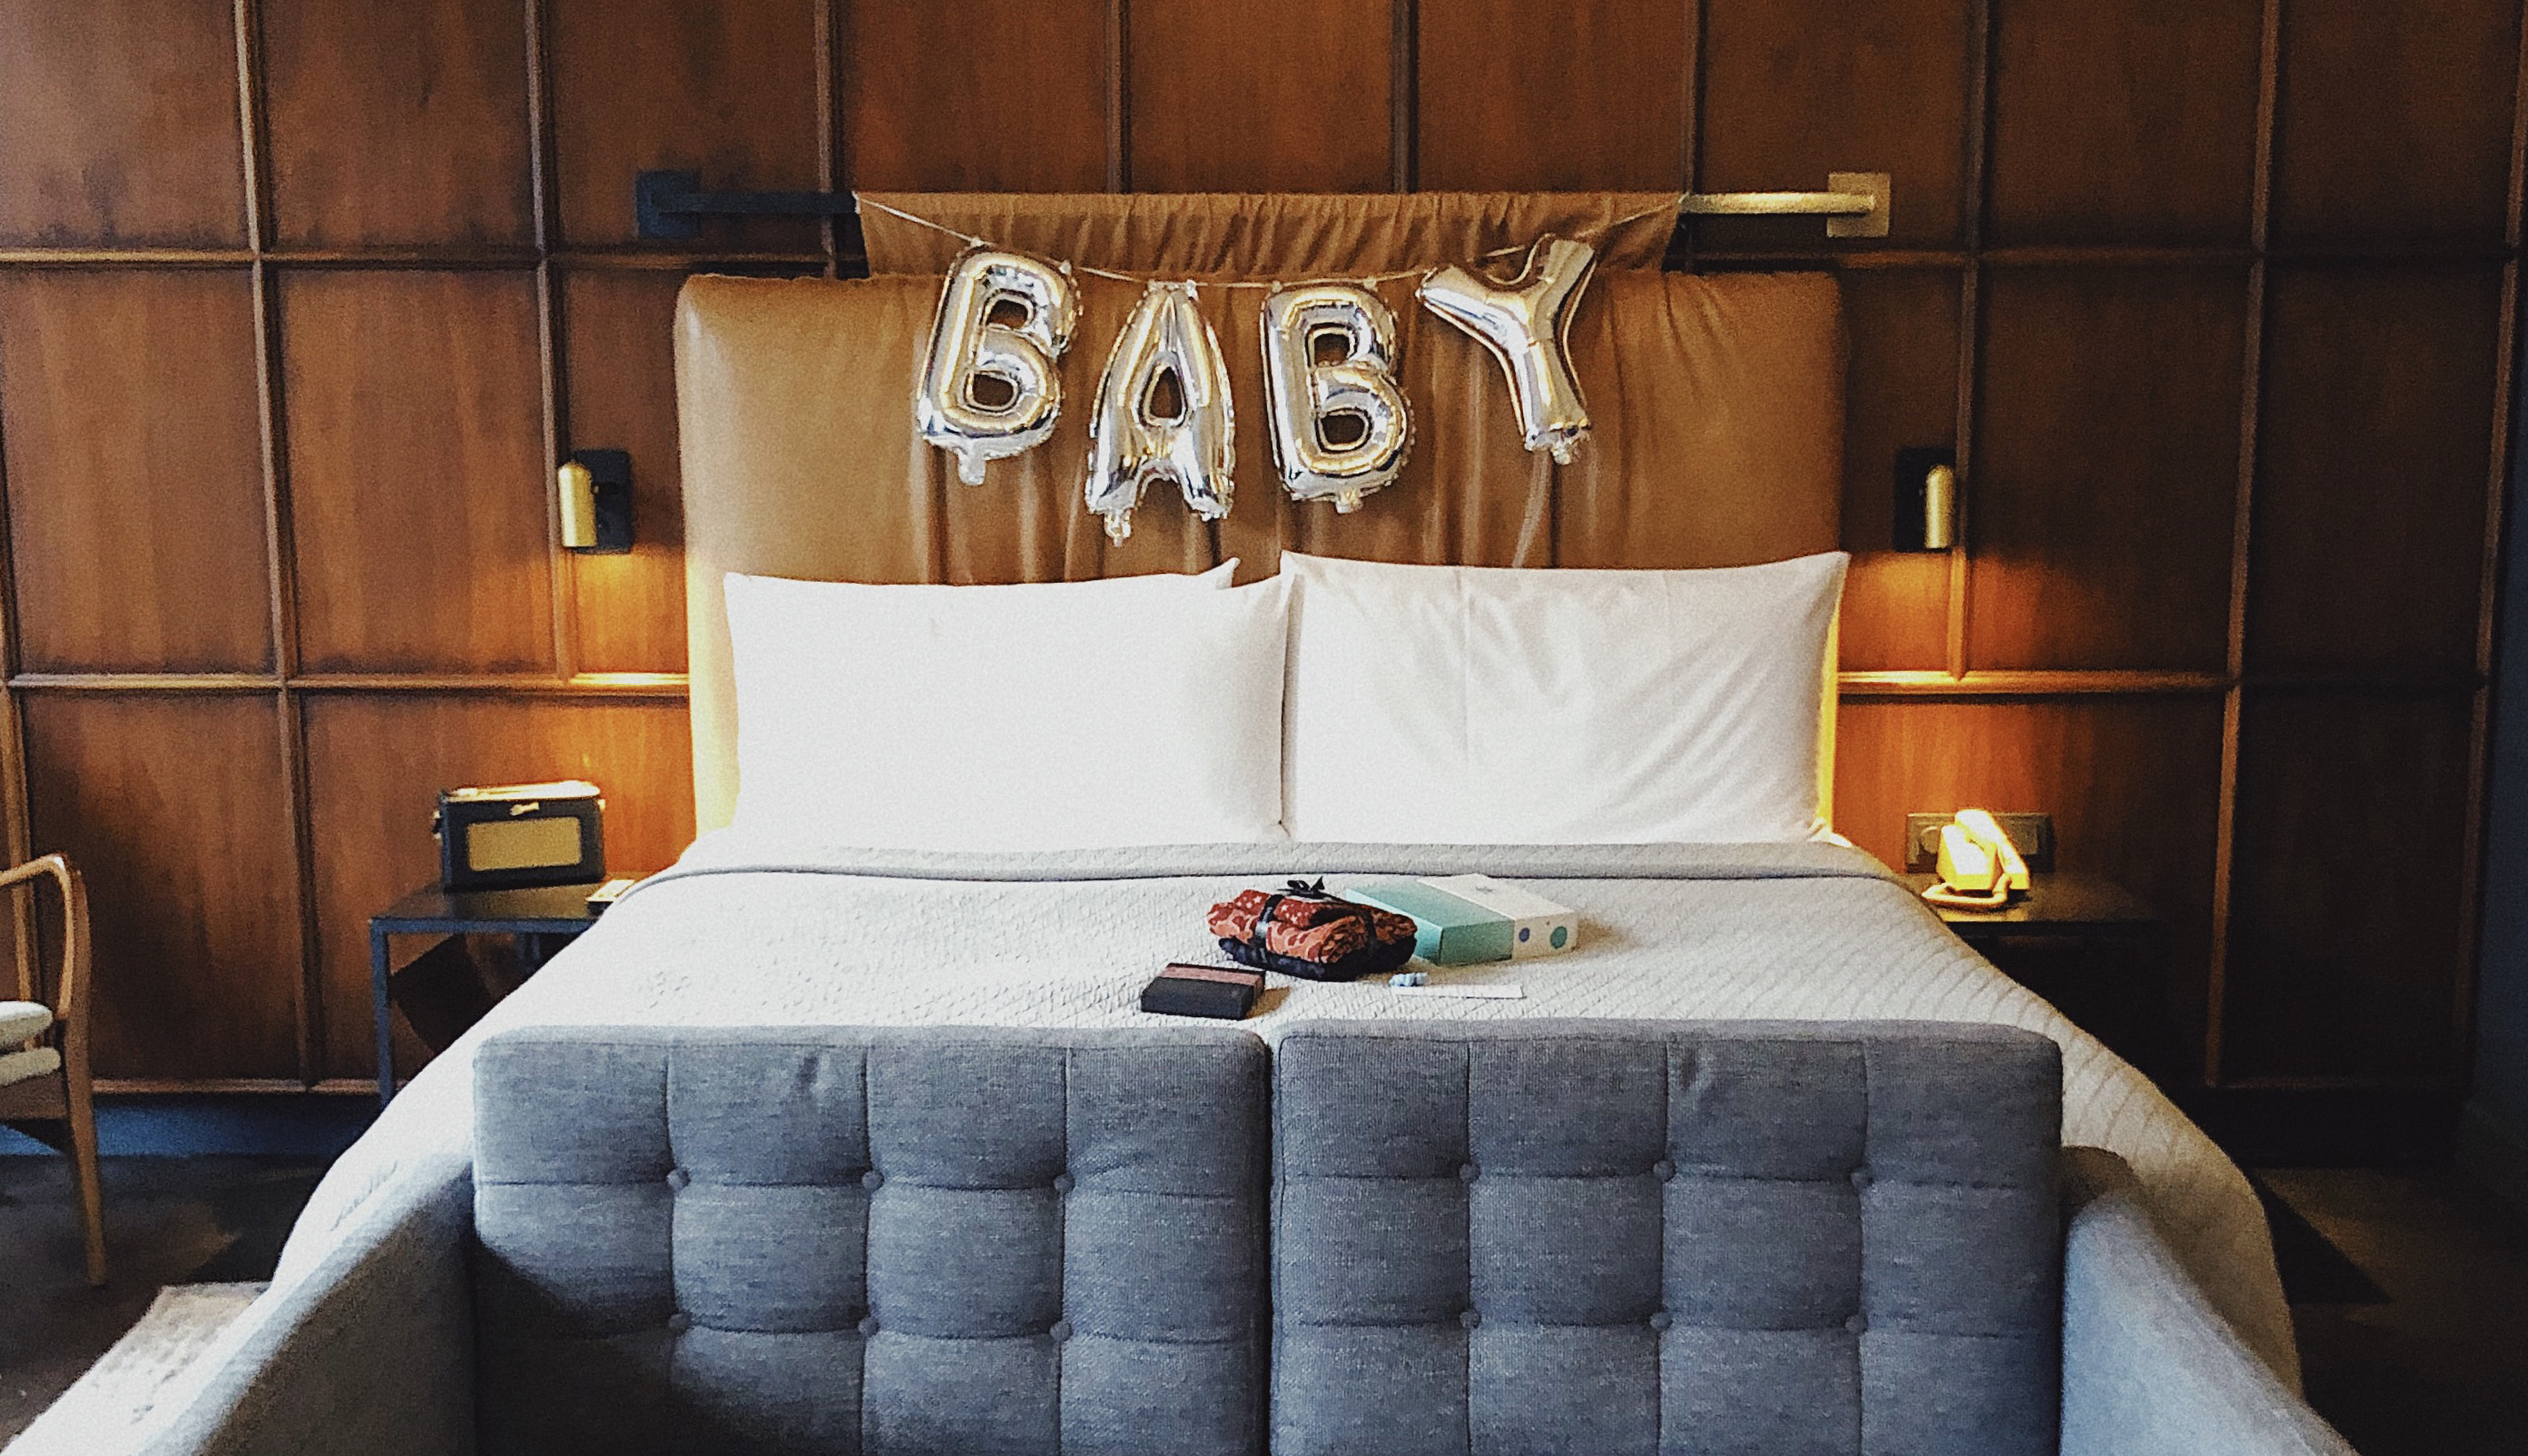 Kamer van de babymoon package in The Hoxton Amsterdam